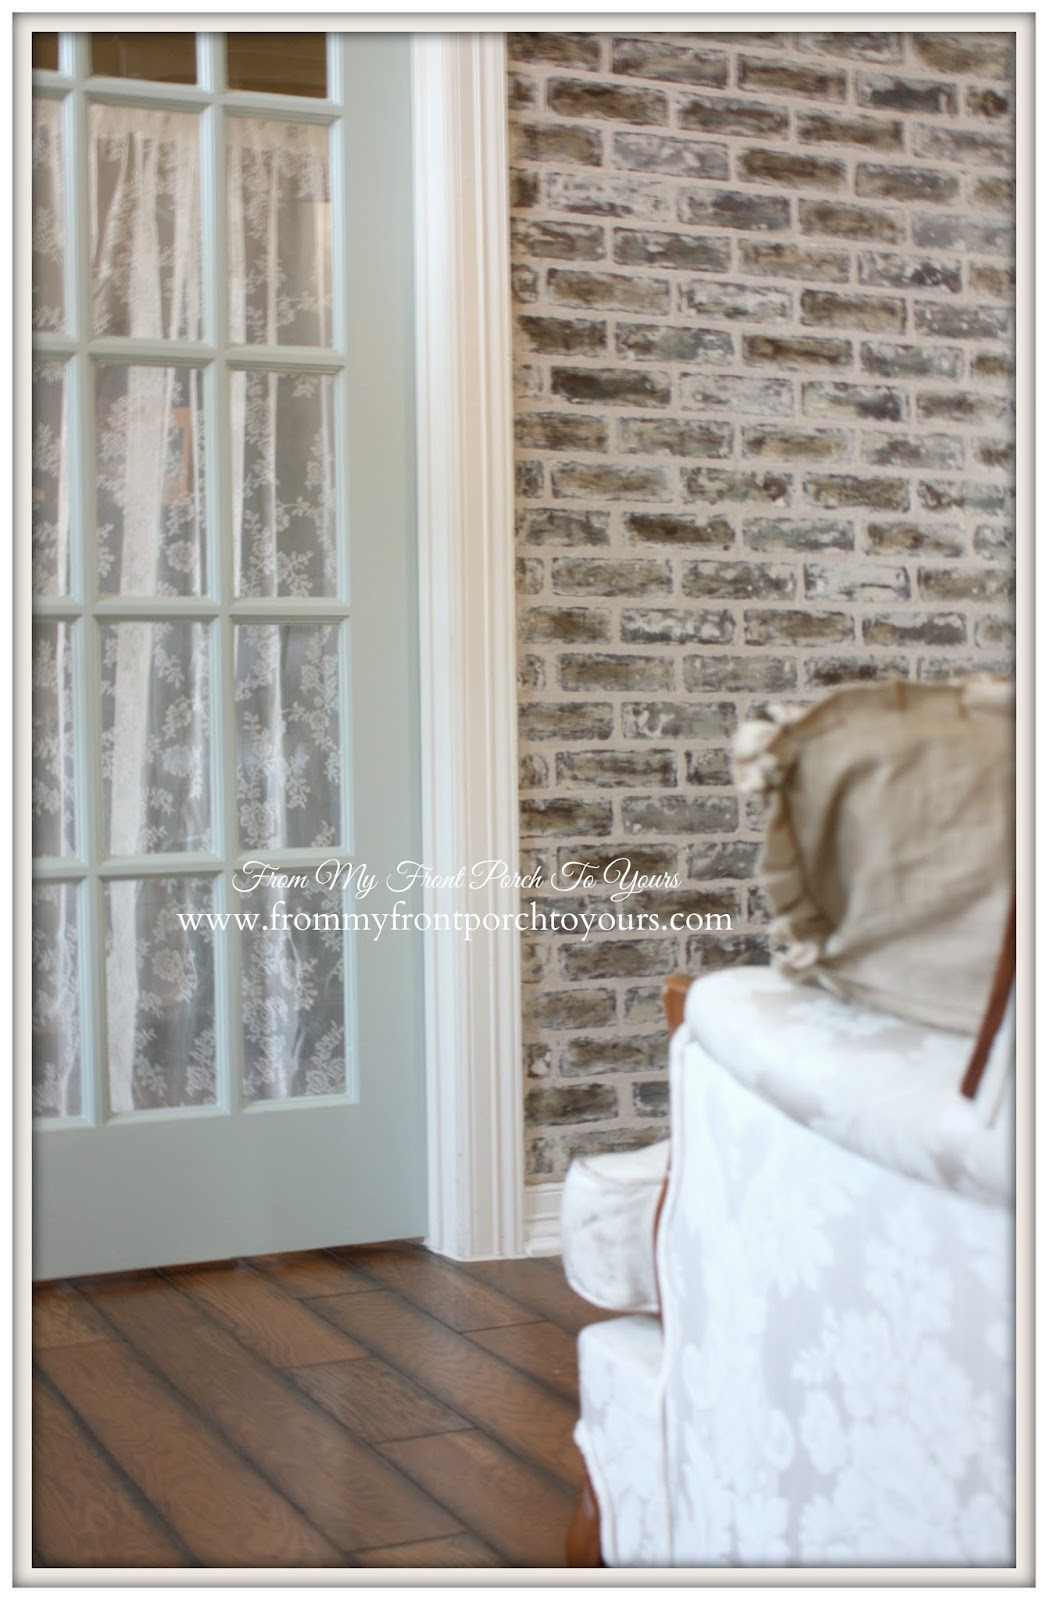 Best ideas about DIY Brick Walls . Save or Pin From My Front Porch To Yours DIY Faux Brick Wall Reveal Now.